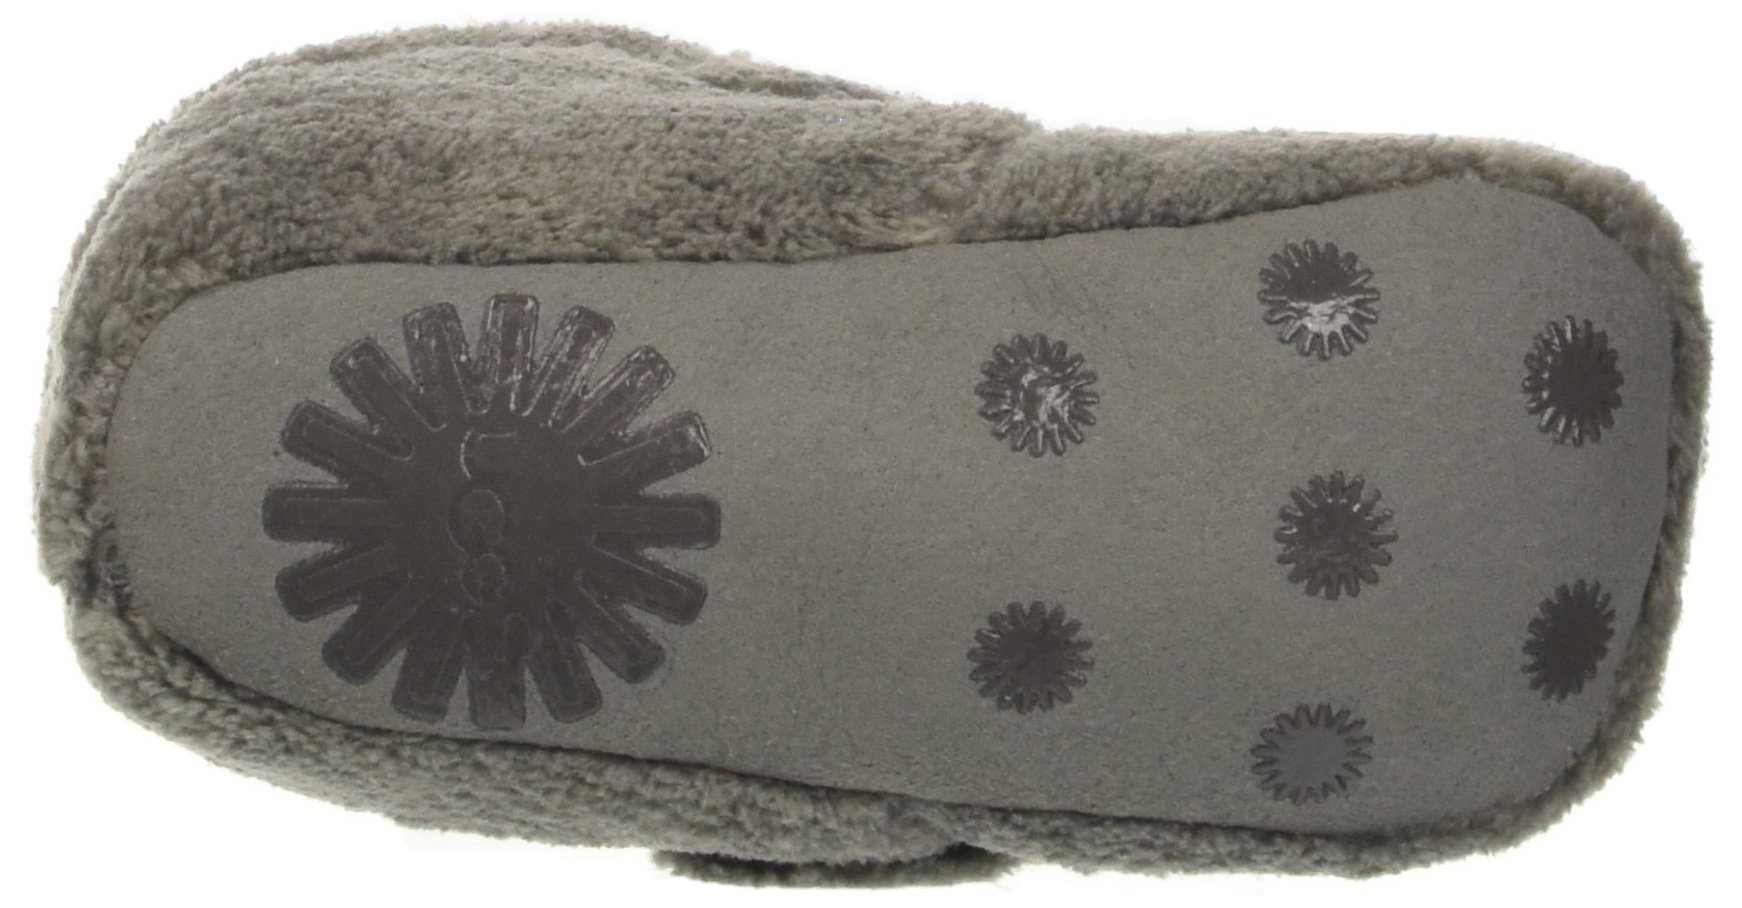 UGG Unisex Bixbee Bootie (Infant/Toddler), Charcoal, 2/3 (6-12 Months) M by UGG (Image #3)